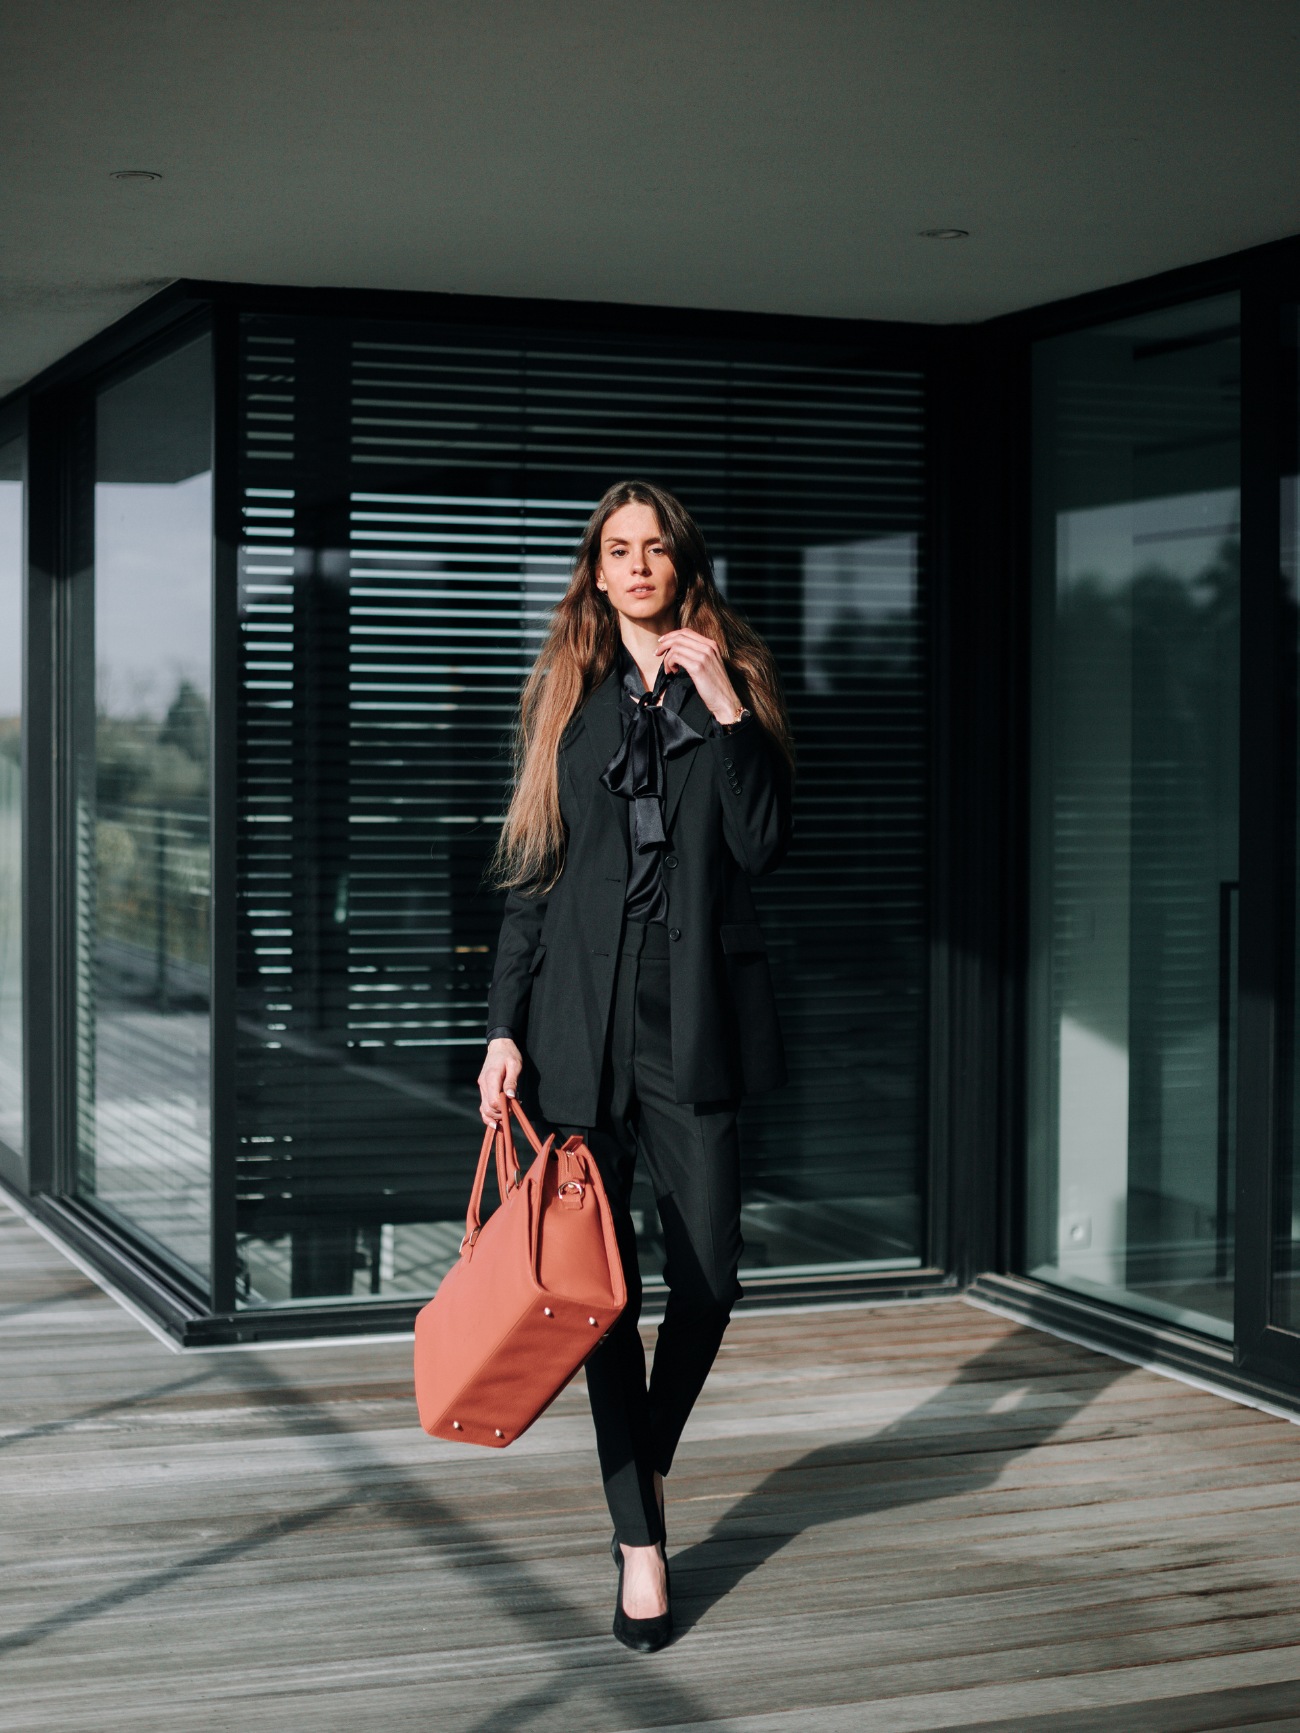 Corporate job interview outfit - work outfit - LM Fashion Agency - workwear